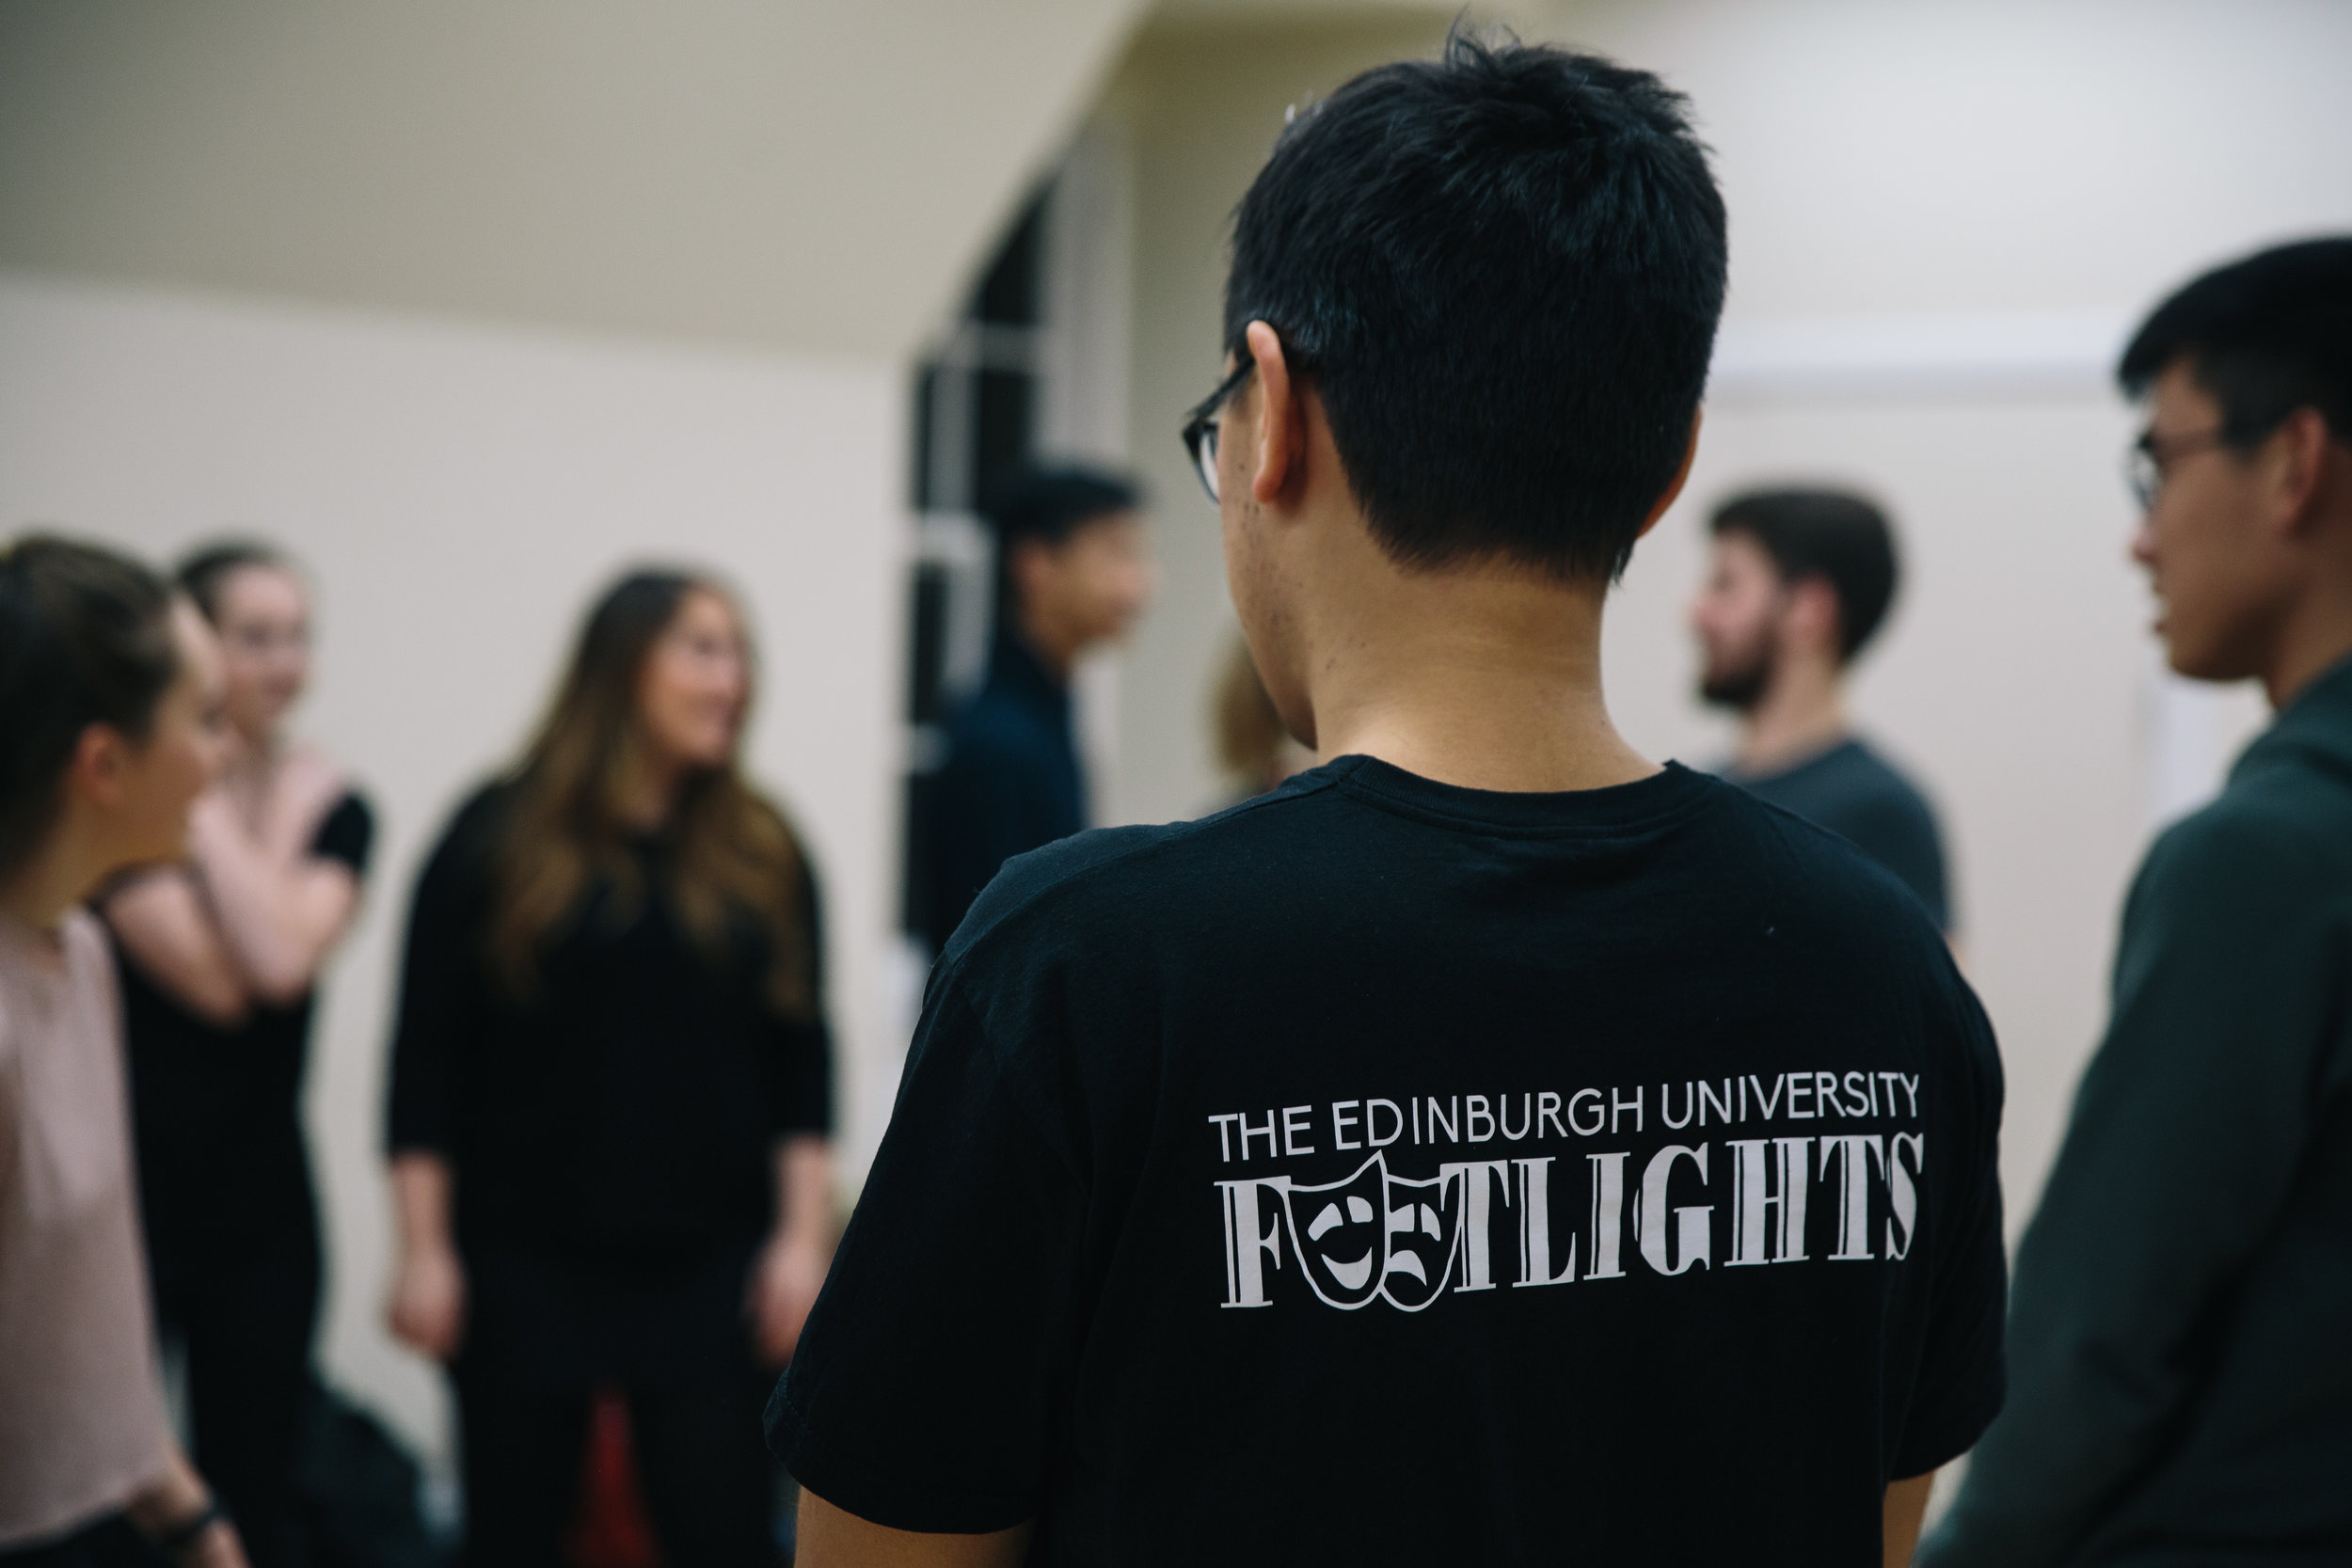 Check out our rehearsal shots here!